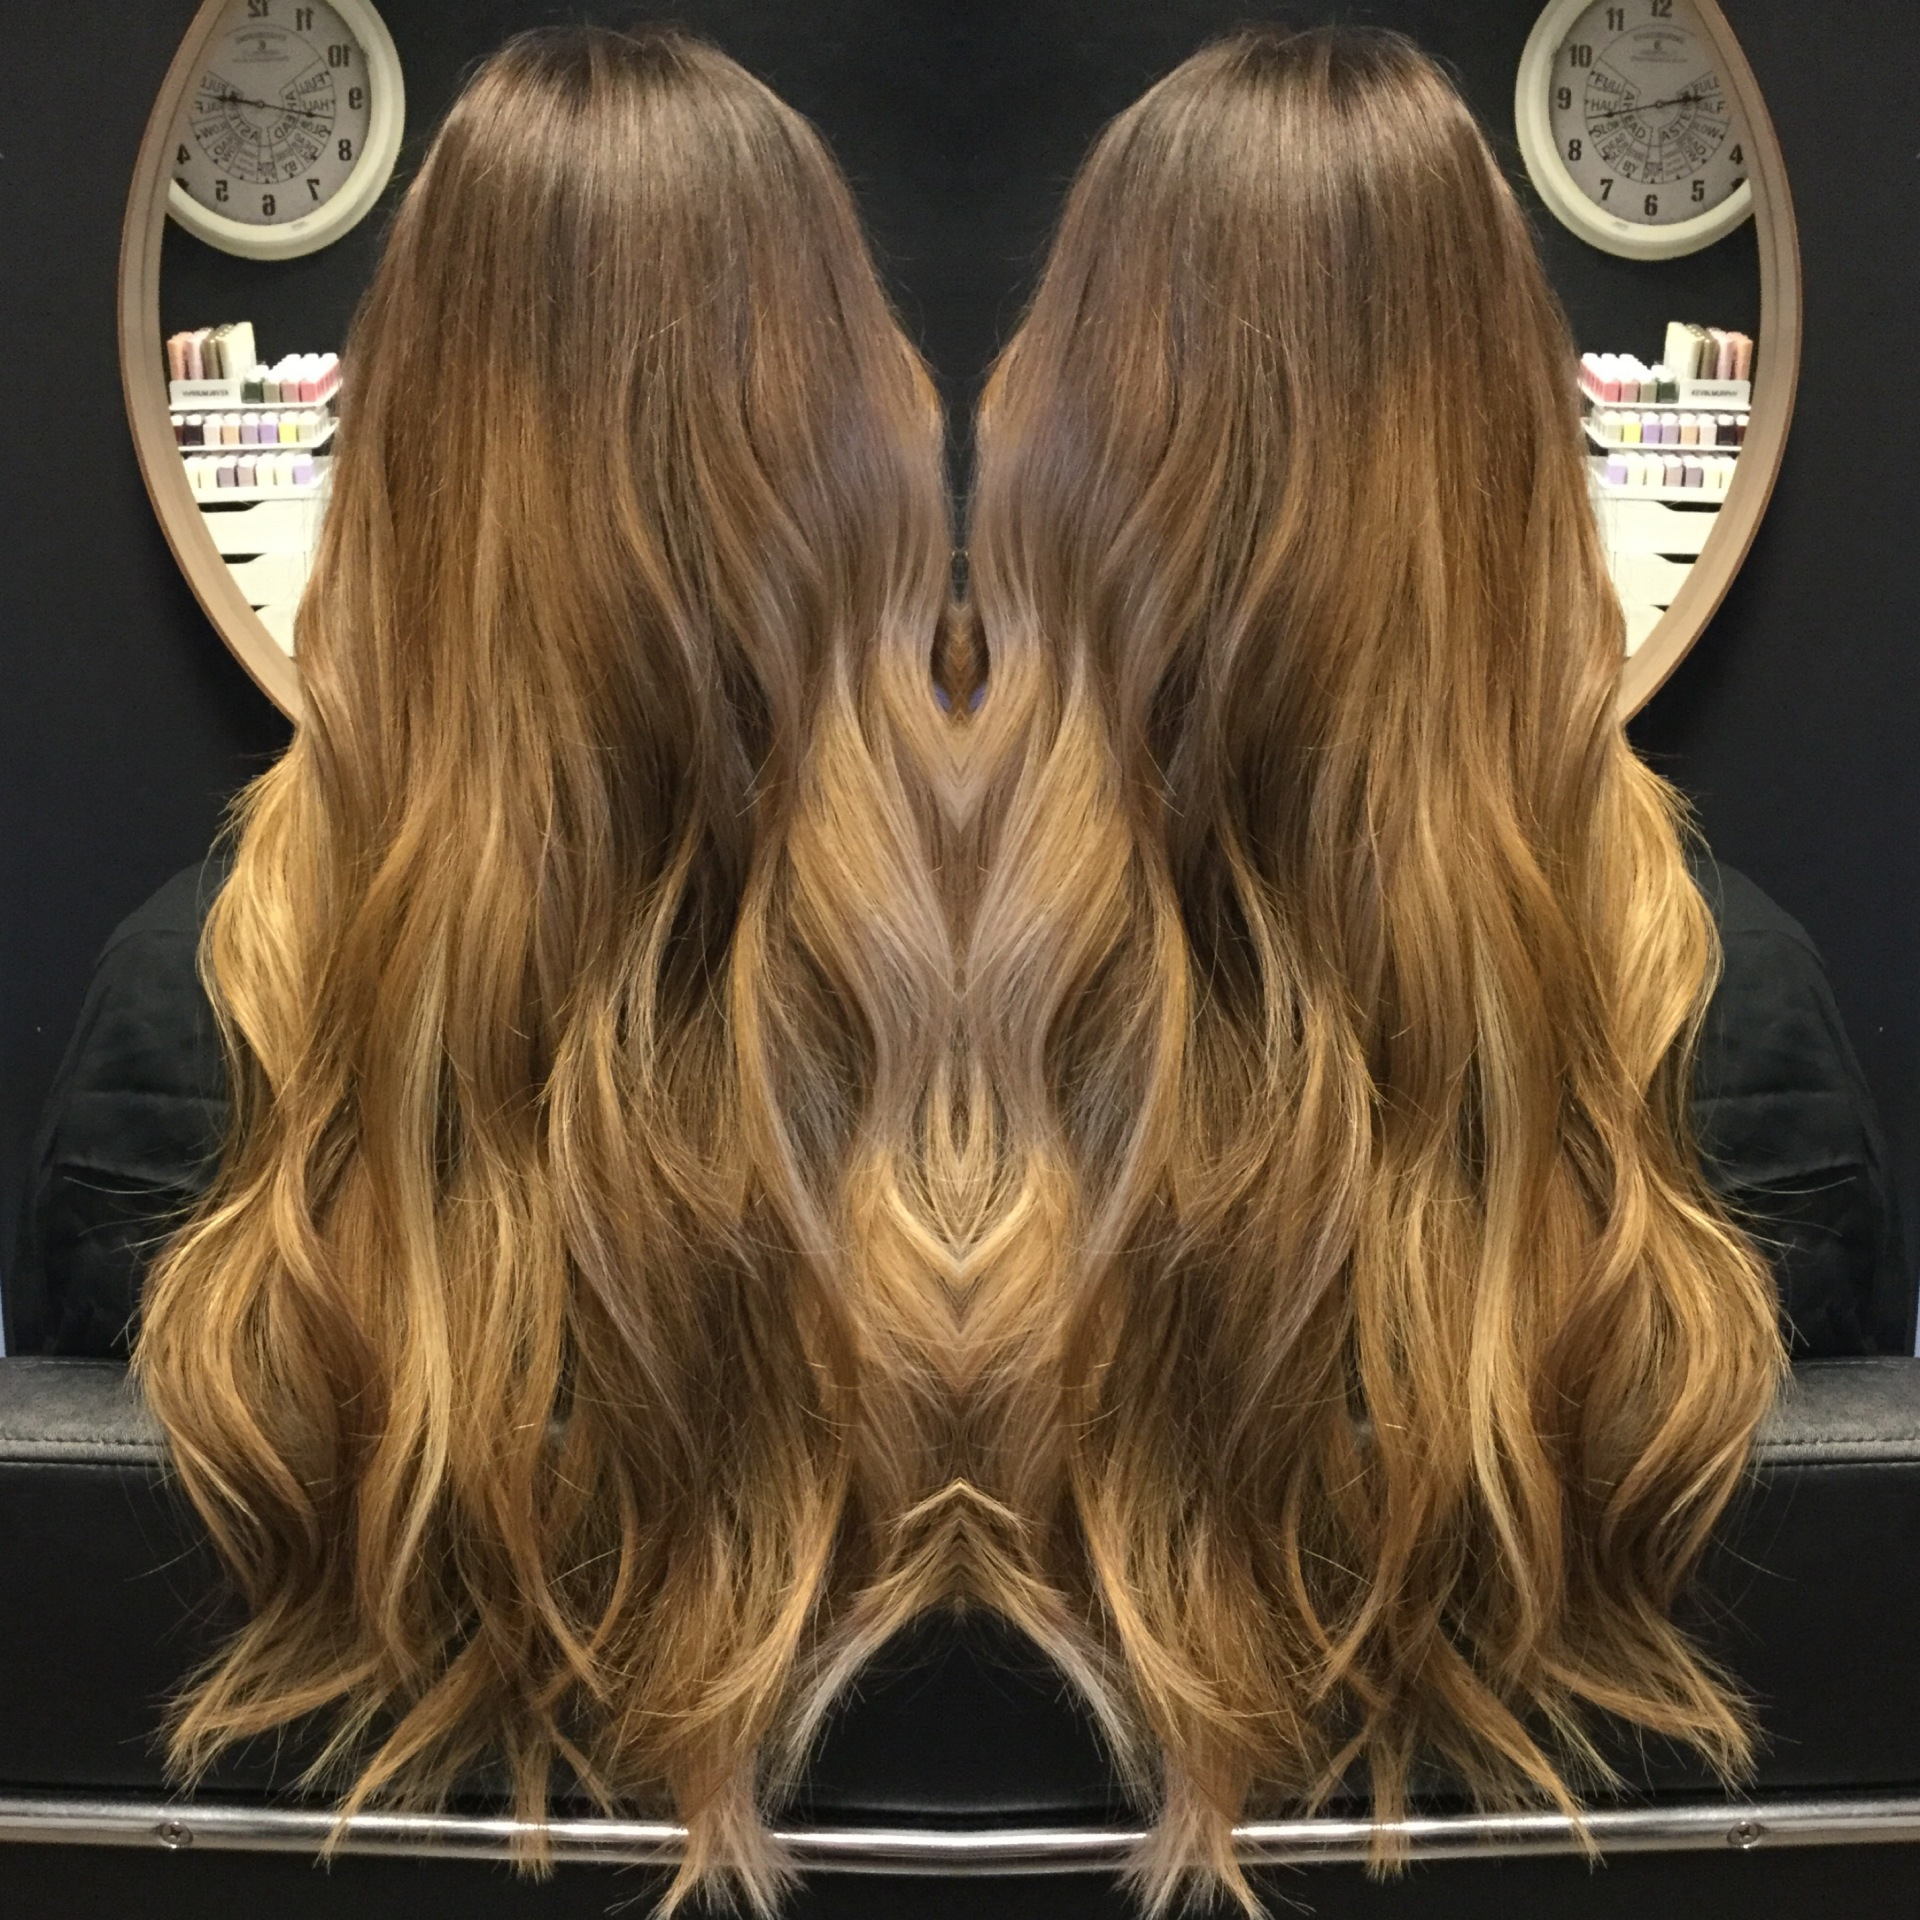 Top tips for looking after hair extensions